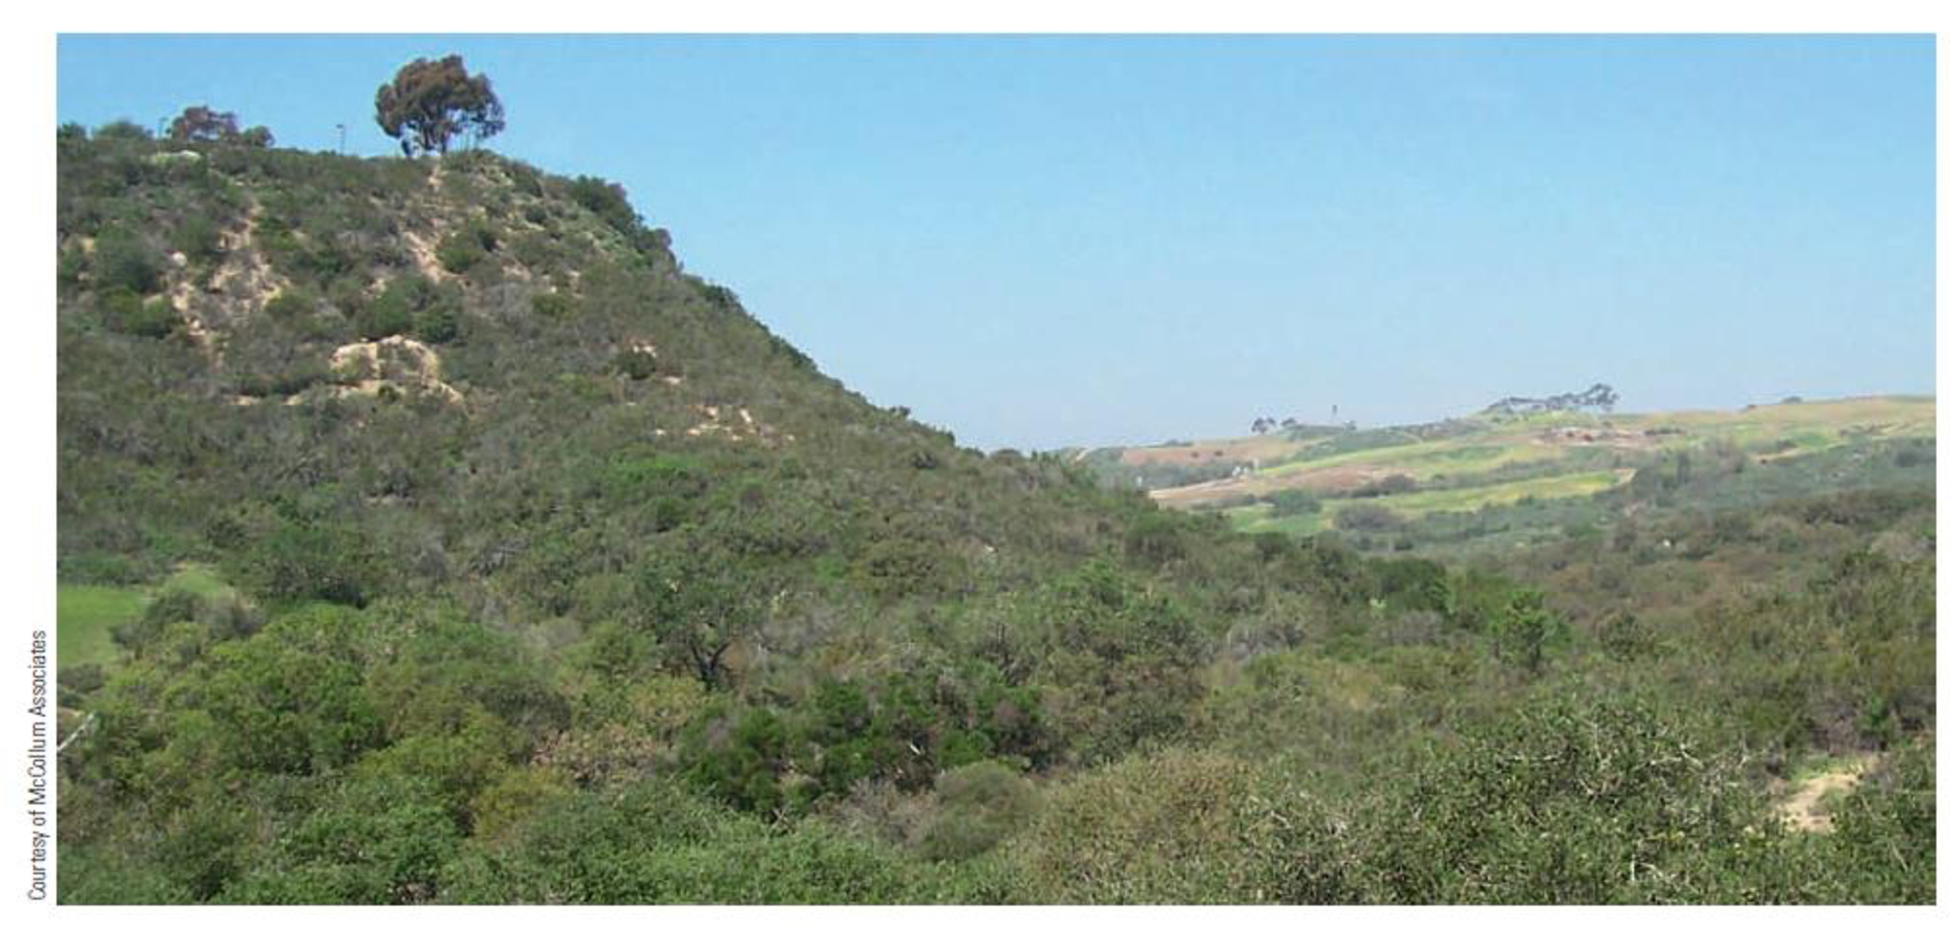 Chapter 7, Problem 24FQ, FIGURE 7.24 Typical chaparral vegetation forms a dense cover of shrubs and low trees near San Diego,